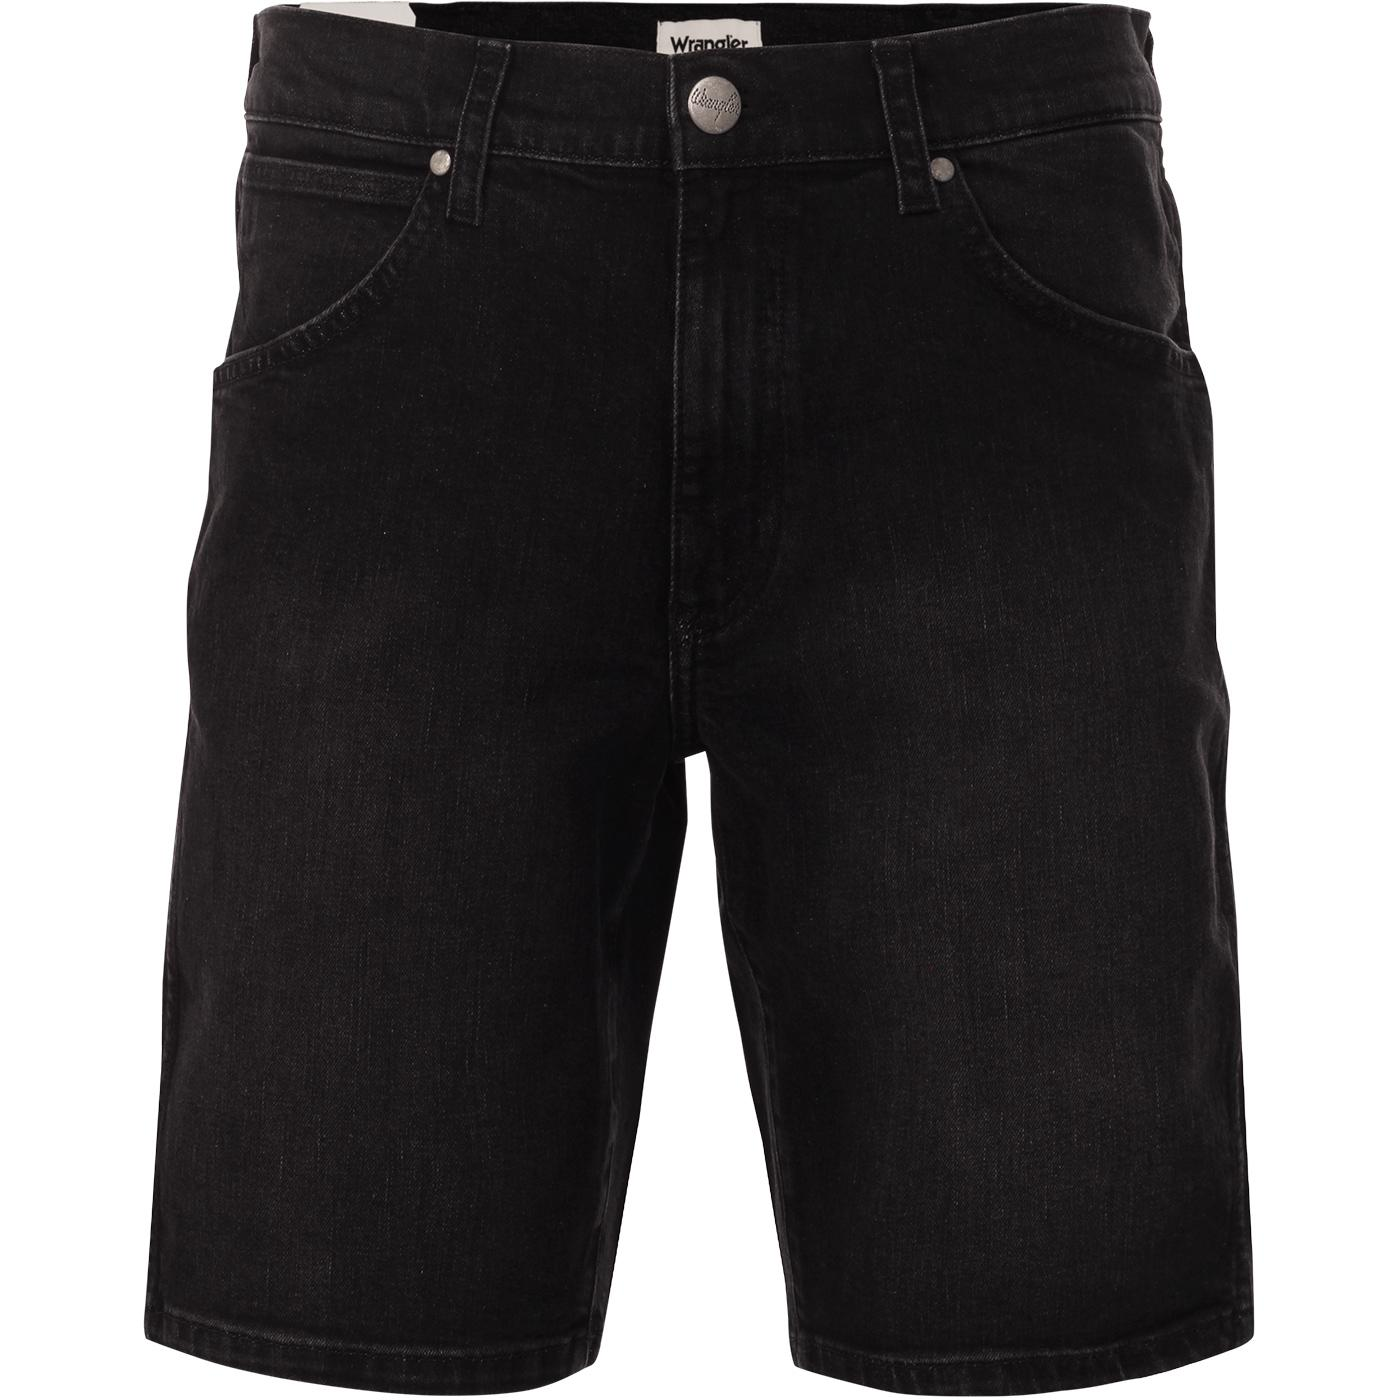 WRANGLER Retro 5 Pocket Denim Shorts LIKE A CHAMP